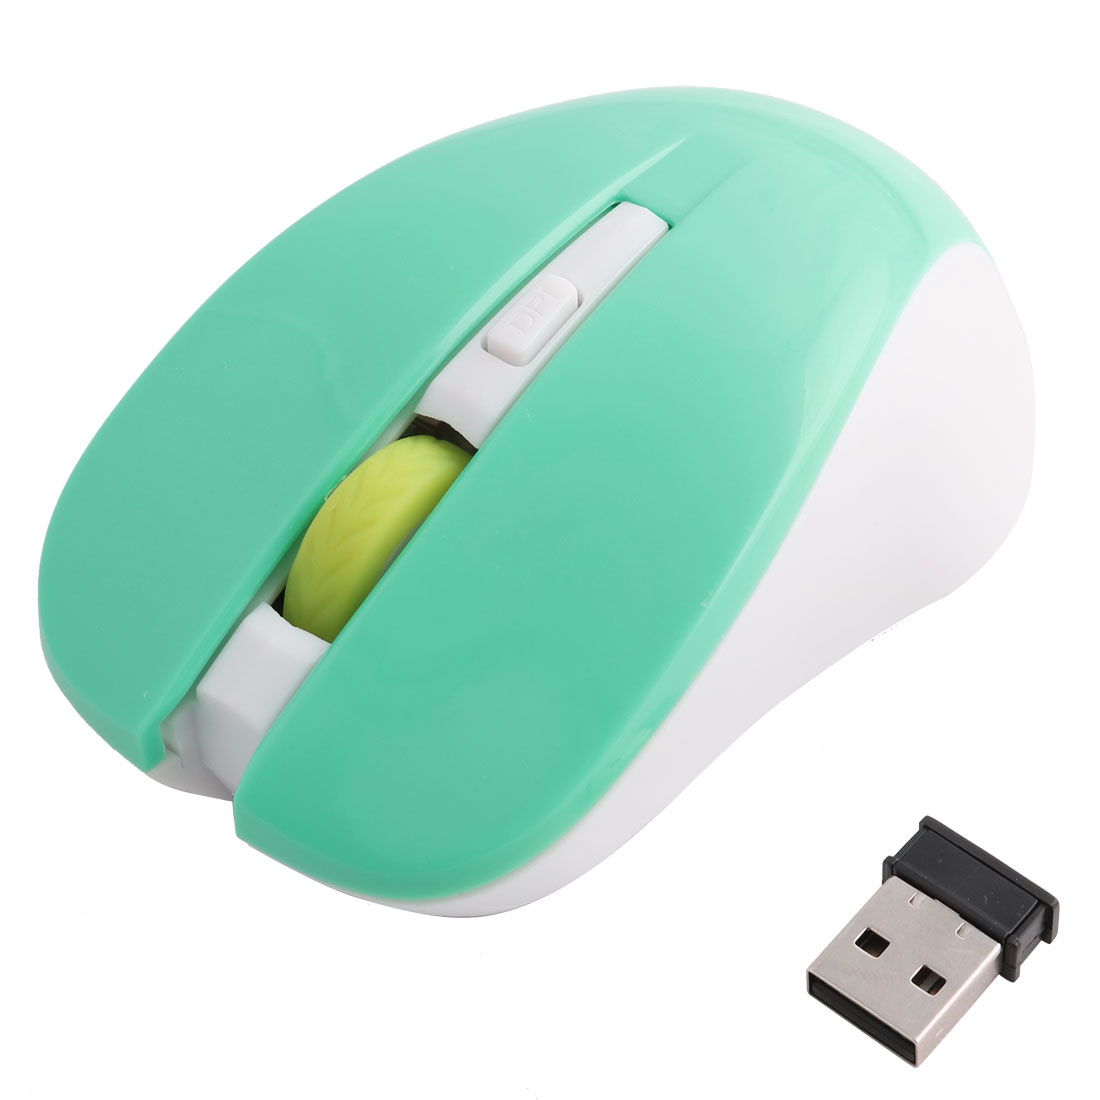 Unique Bargains Computer PC Wireless Red LED Portable Mobile Mouse Optical Mice Green White